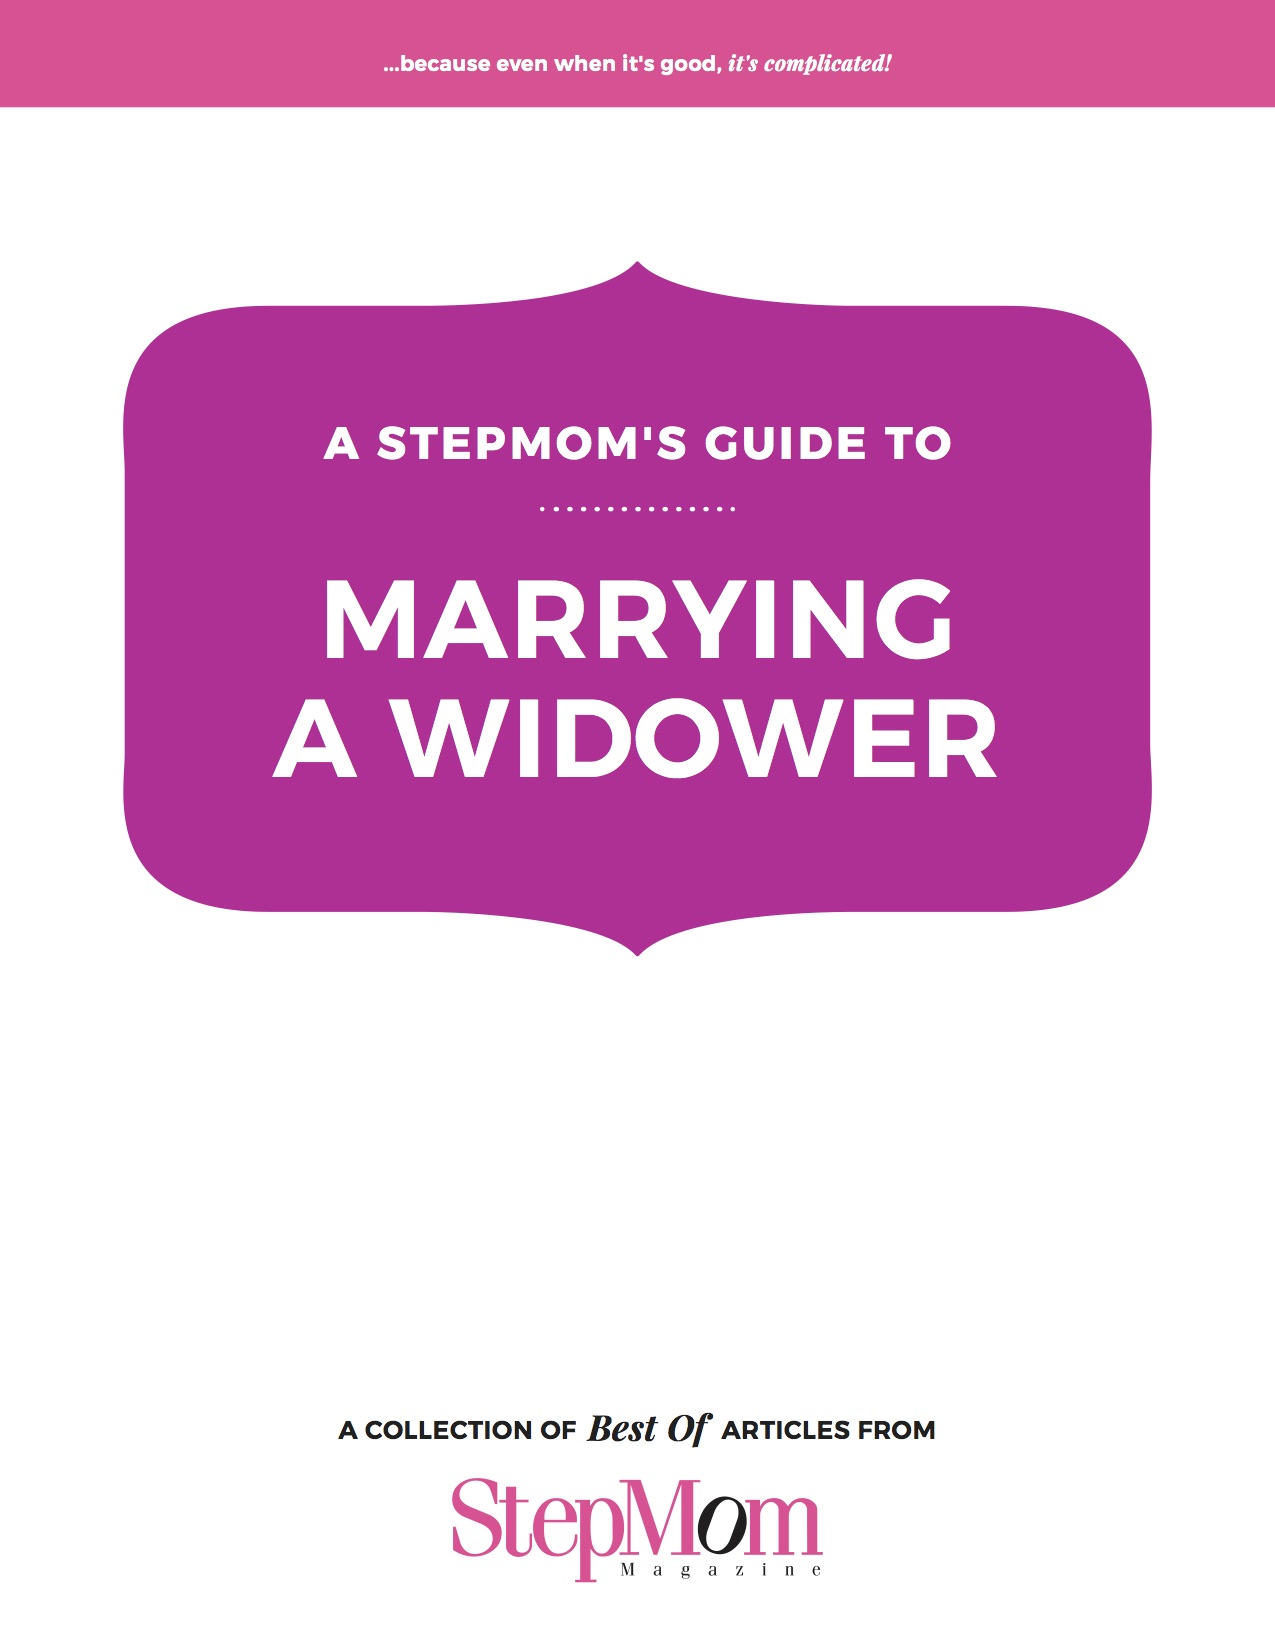 Marrying a Widower